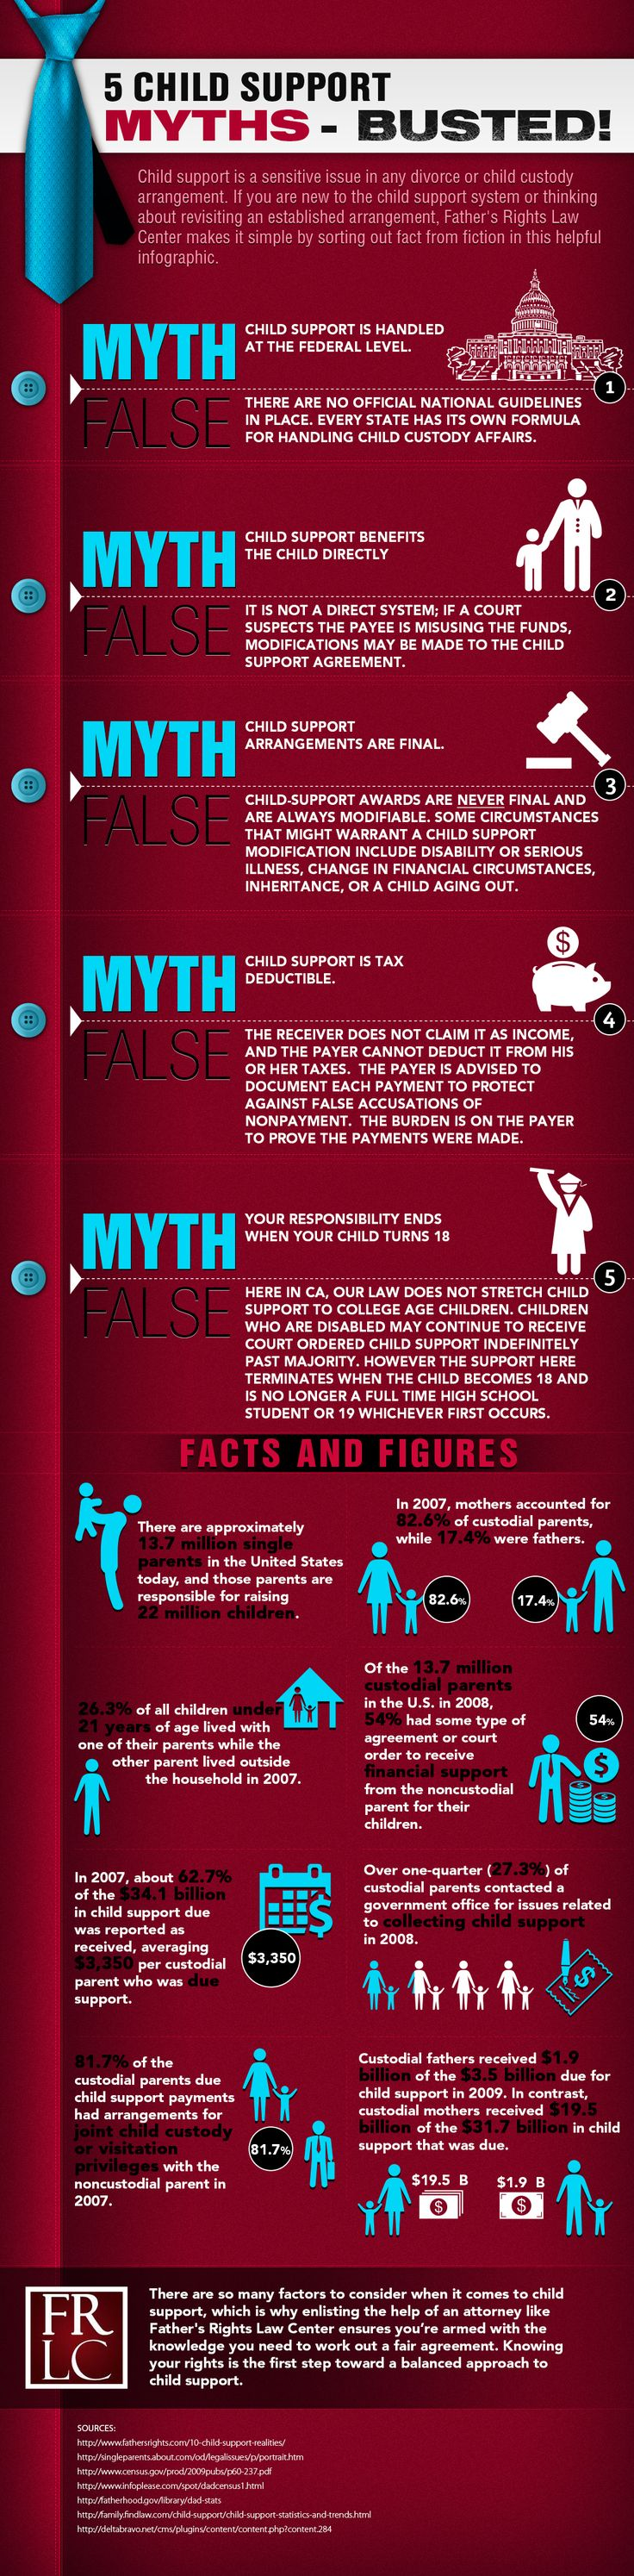 5 child support myths and the truths behind them, along with some shocking statistics about child support and custody in general.